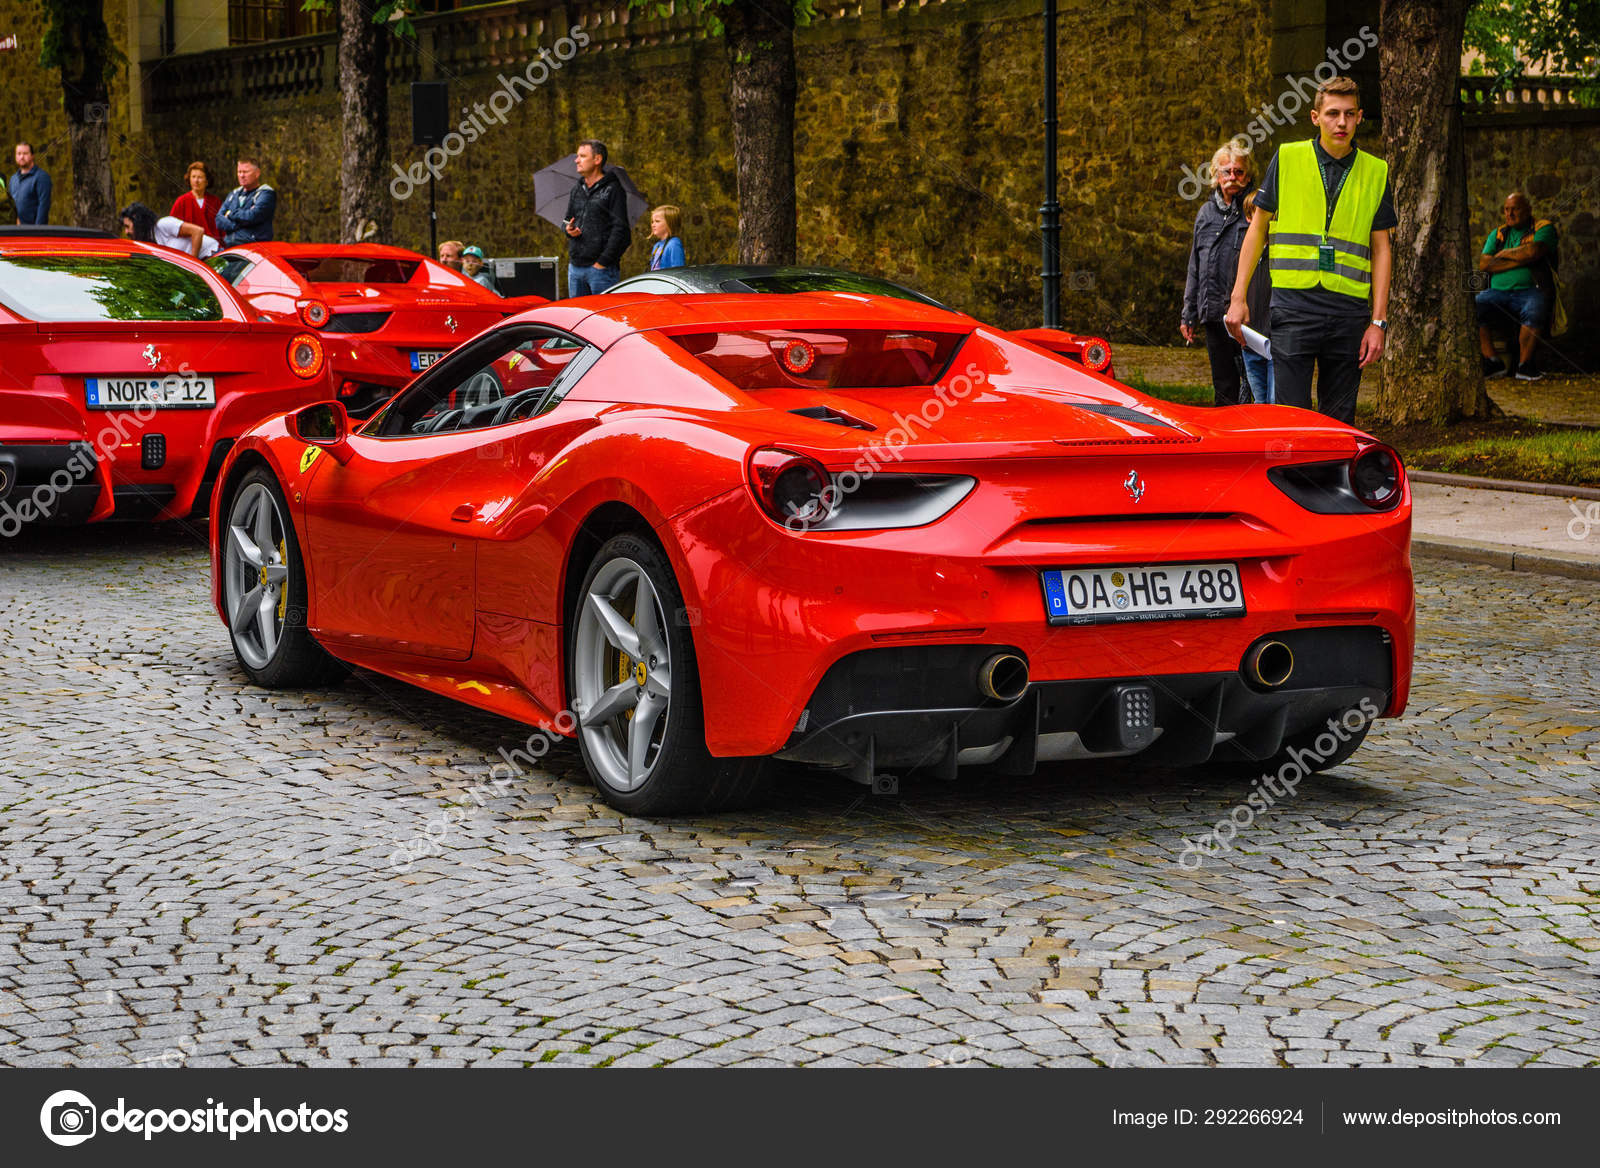 Germany Fulda Jul 2019 Rearview Lights Of Red Ferrari 488 Spider Type F142m Coupe Is A Mid Engine Sports Car Produced By The Italian Automobile Manufacturer Ferrari The Car Is An Update